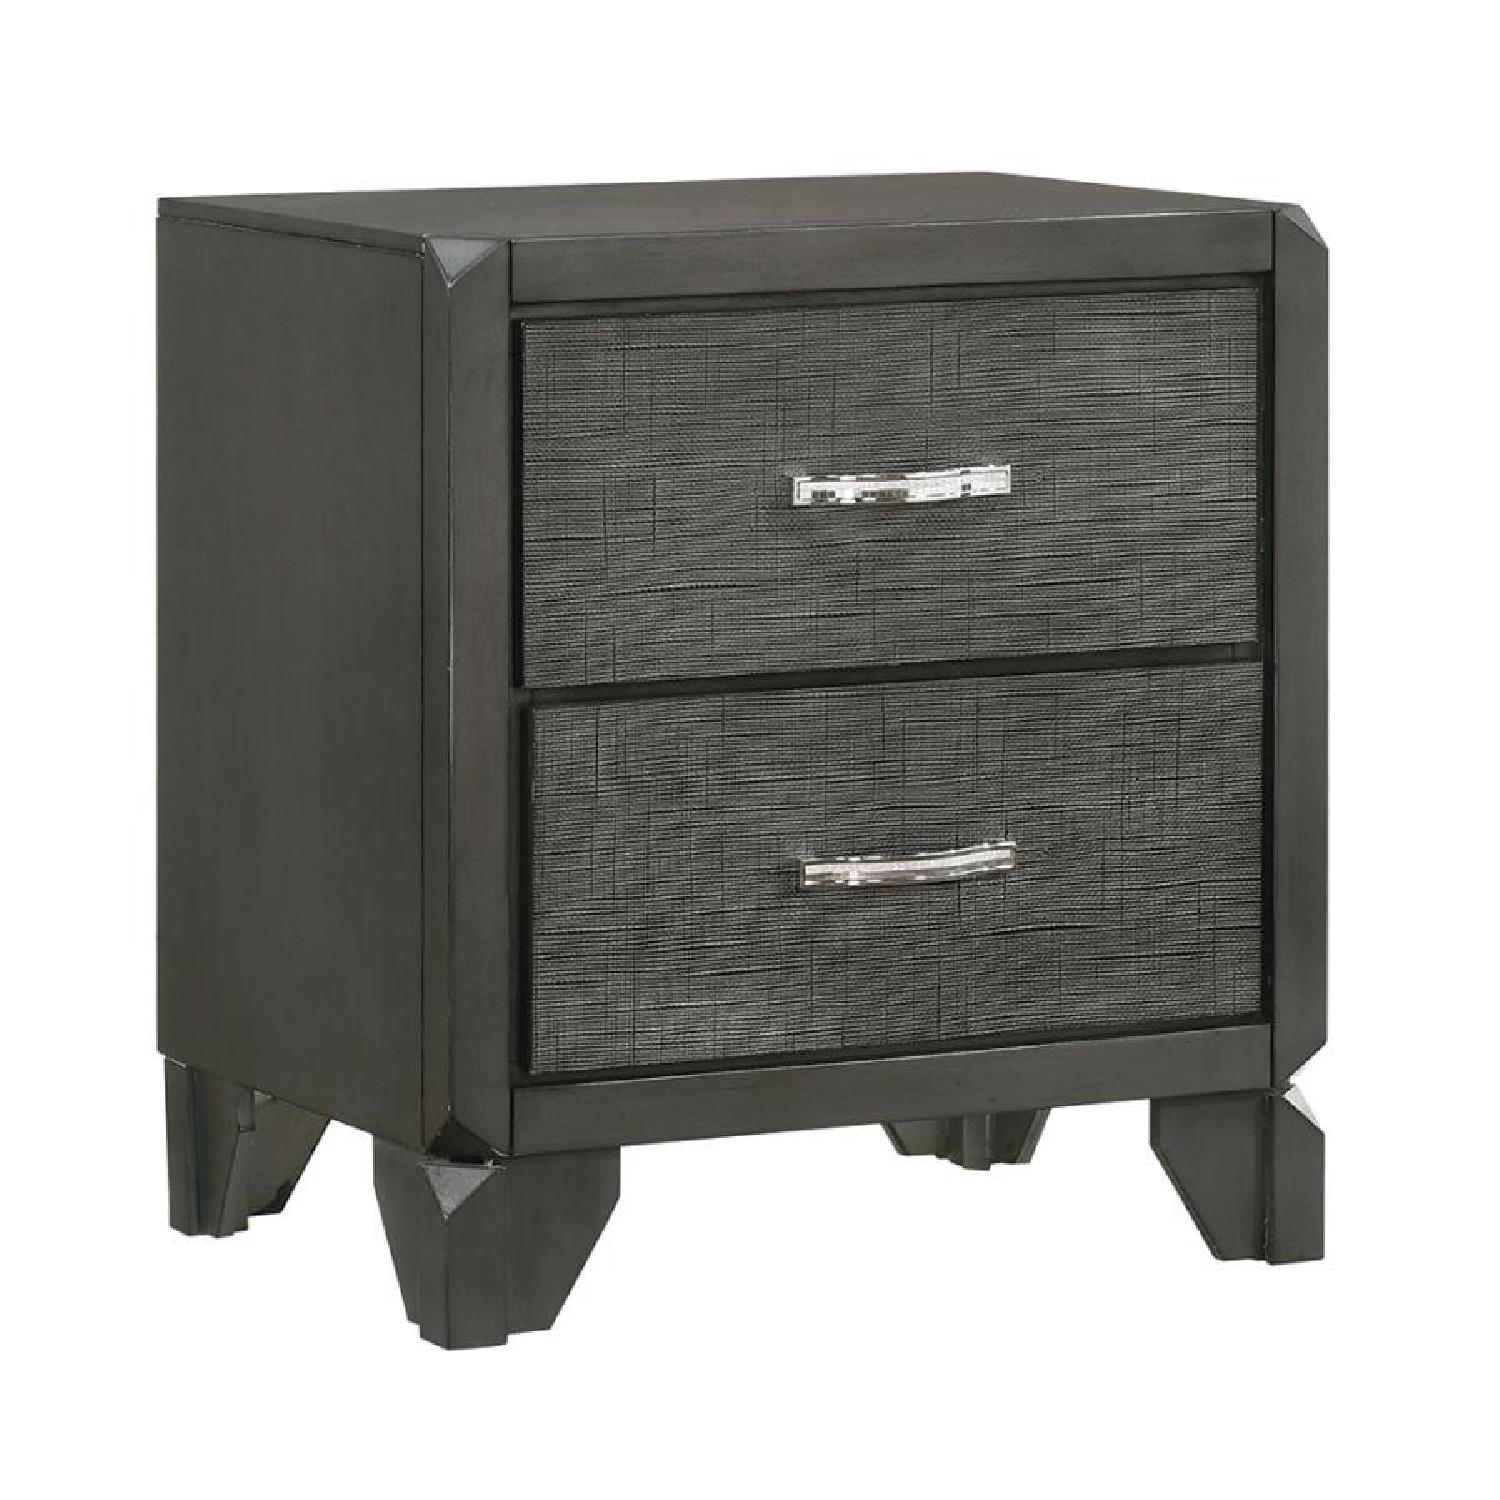 2-Drawer Nightstand in Caviar Finish w/ Woven Texture Front - image-0